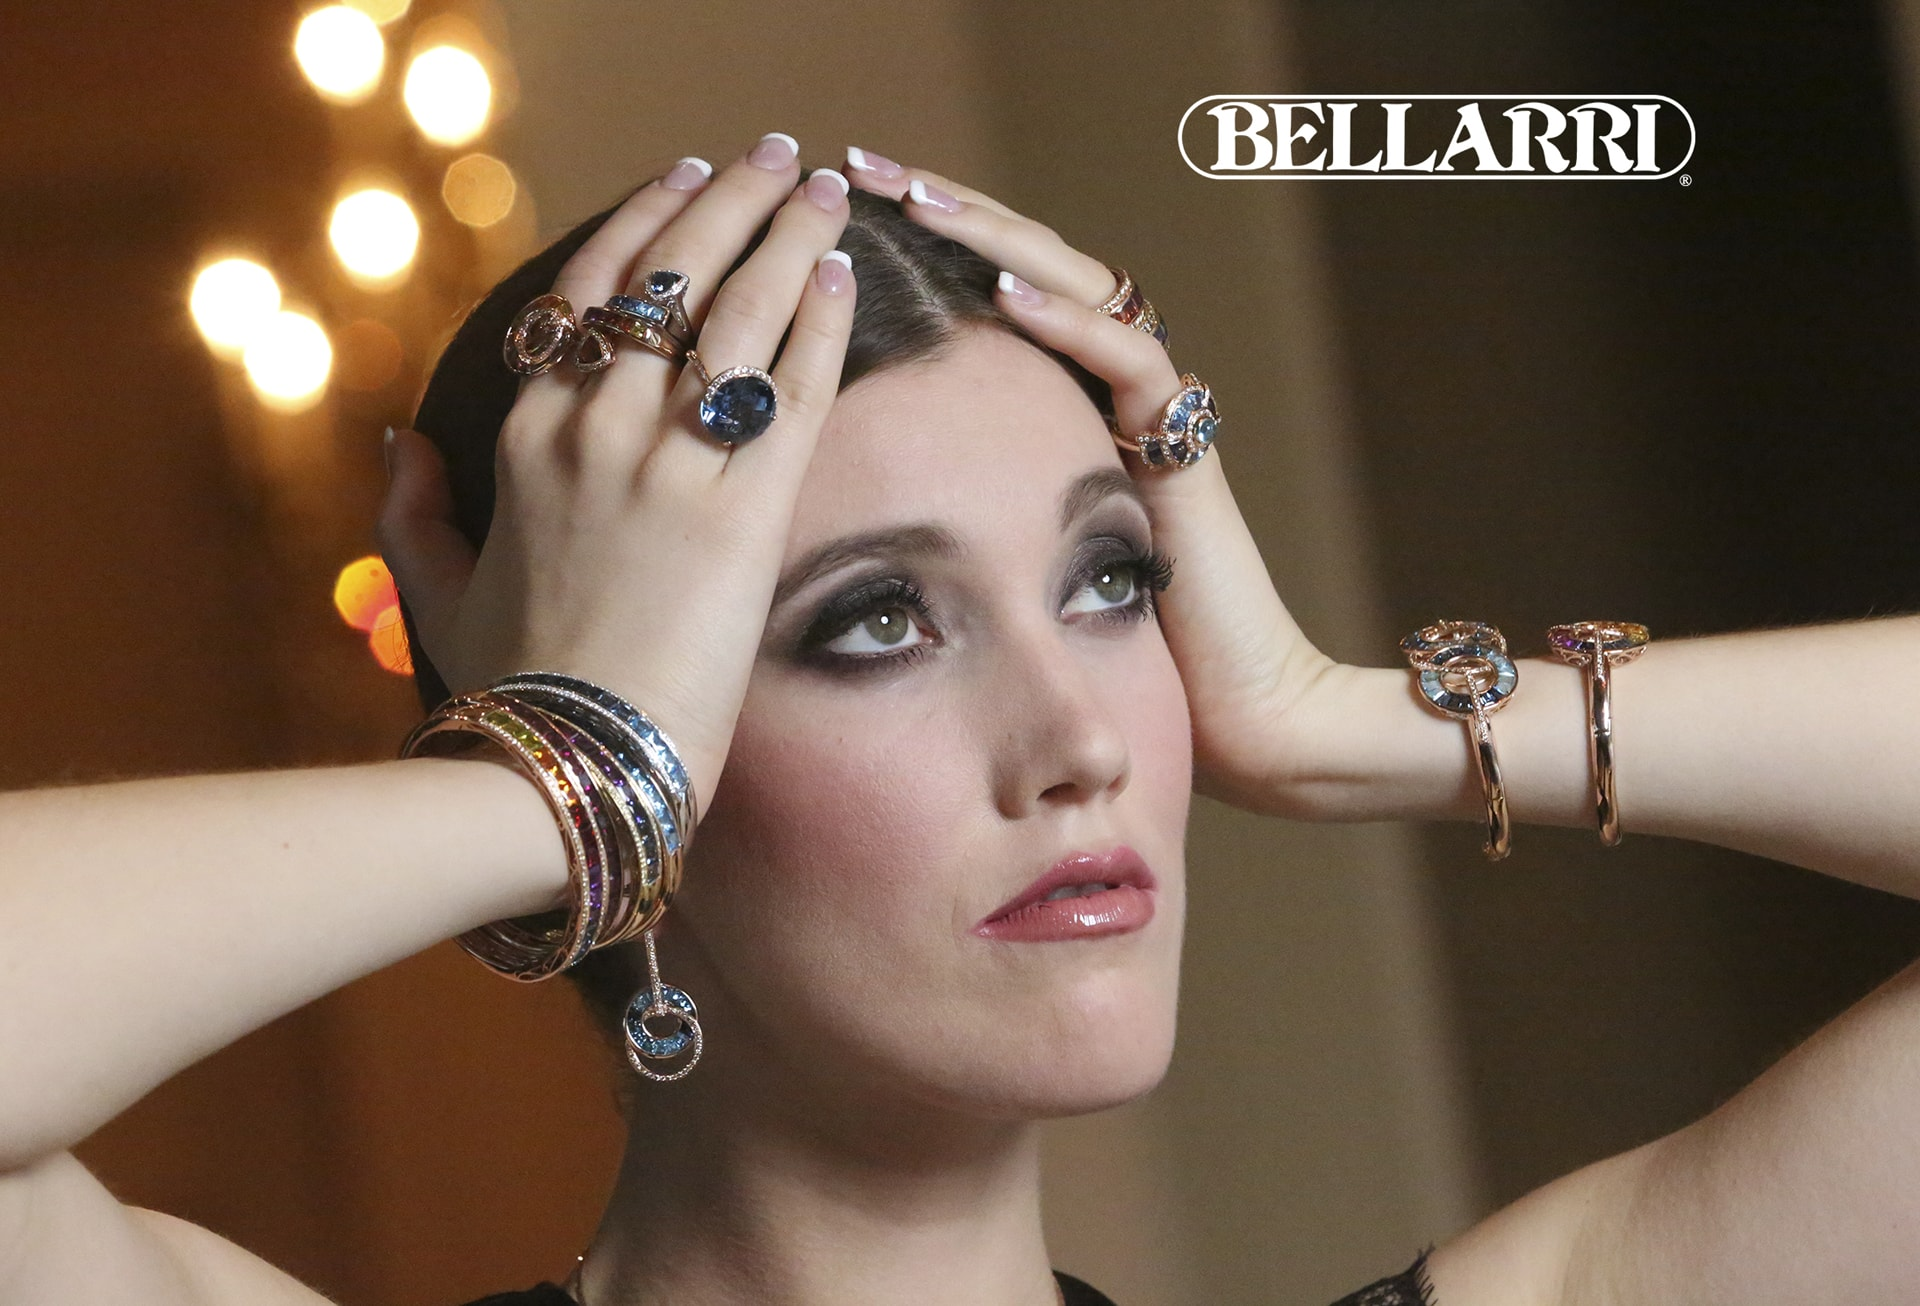 Bellarri Model with Jewelry